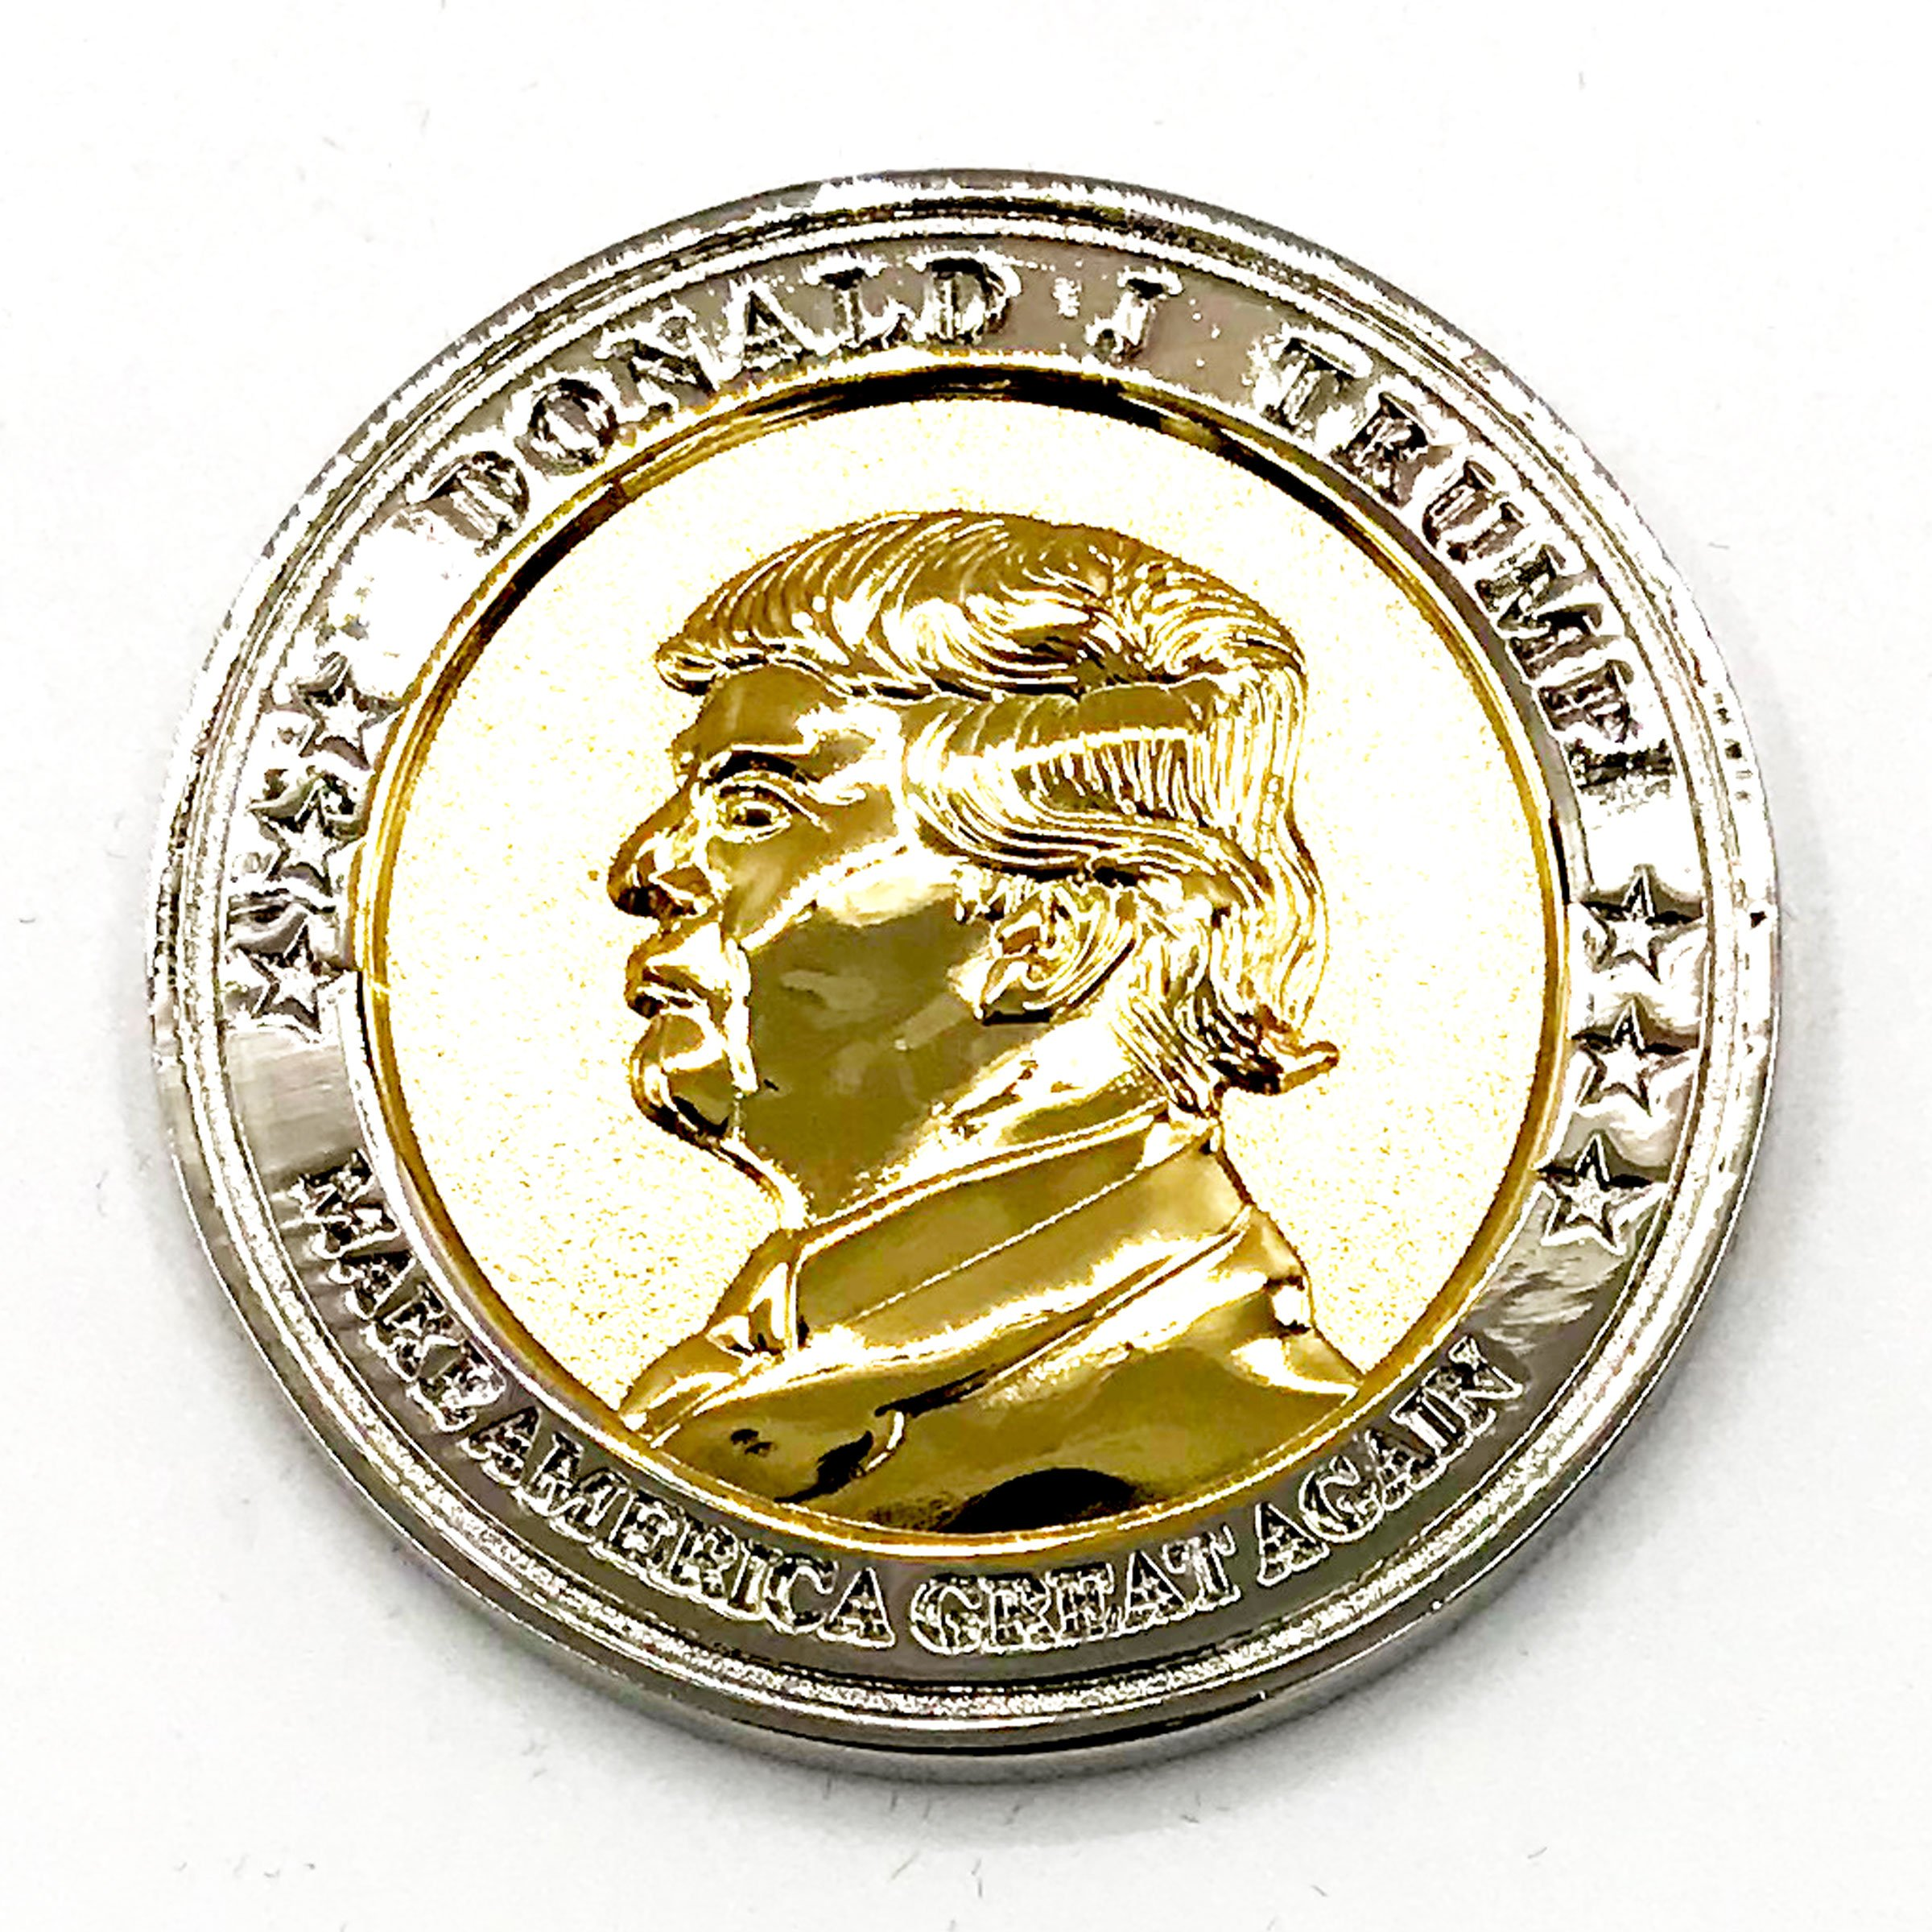 Trump Coin, 58th Presidential Inauguration of Donald J. Trump Challenge Coin by AIIZ Collectibles, 1.75'' Diameter in Shinny 24K Gold & 925 Silver Plating, packaged in Black Velvet Case by AIIZ Collectibles (Image #4)